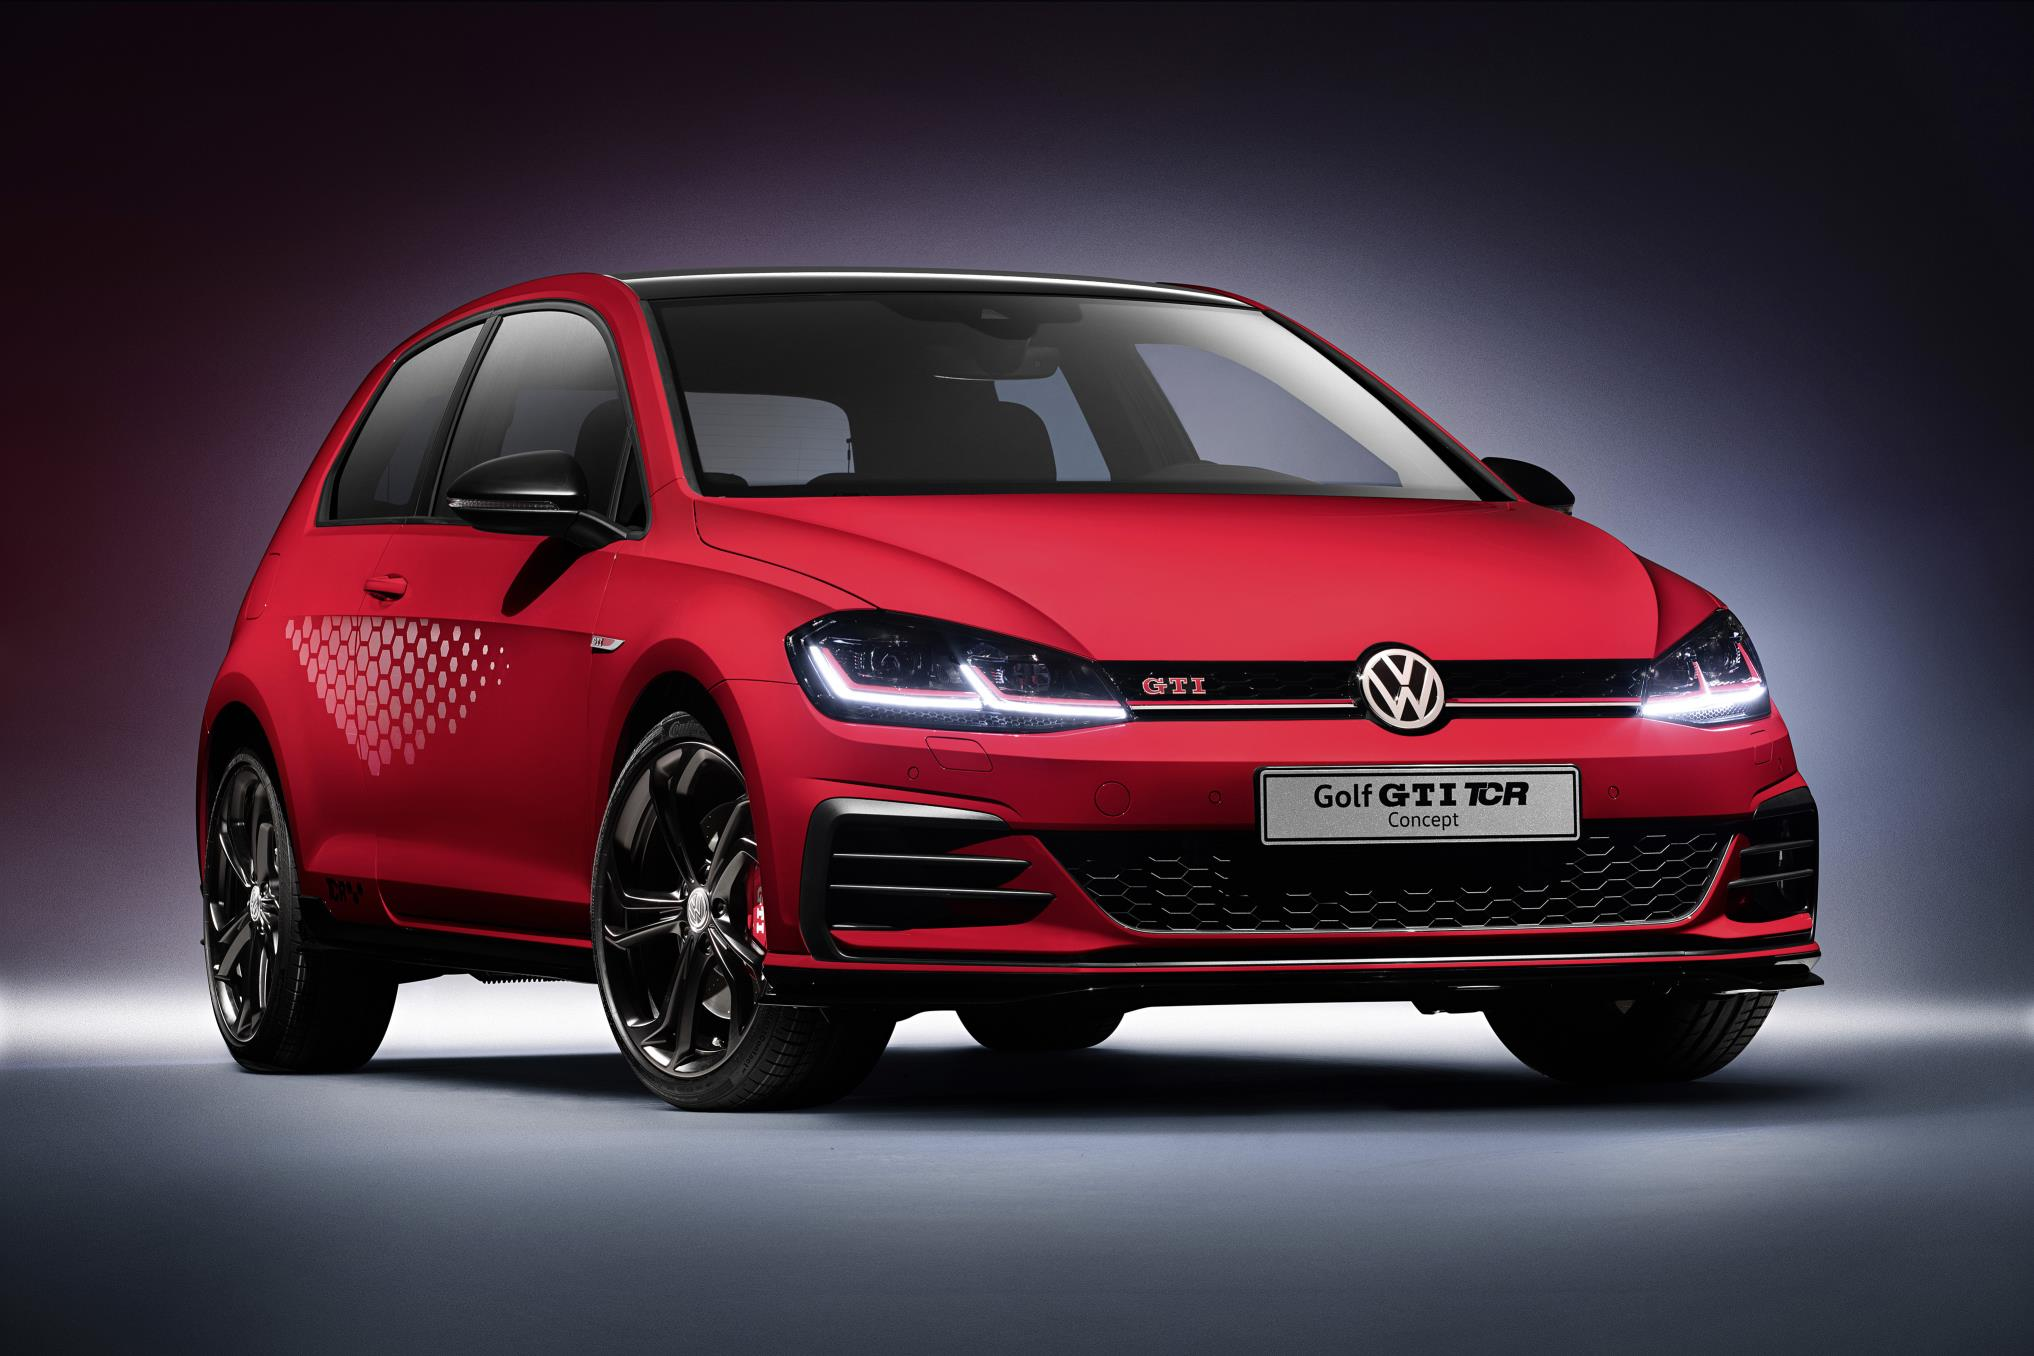 New Volkswagen Golf GTI TCR is the most powerful GTI ever